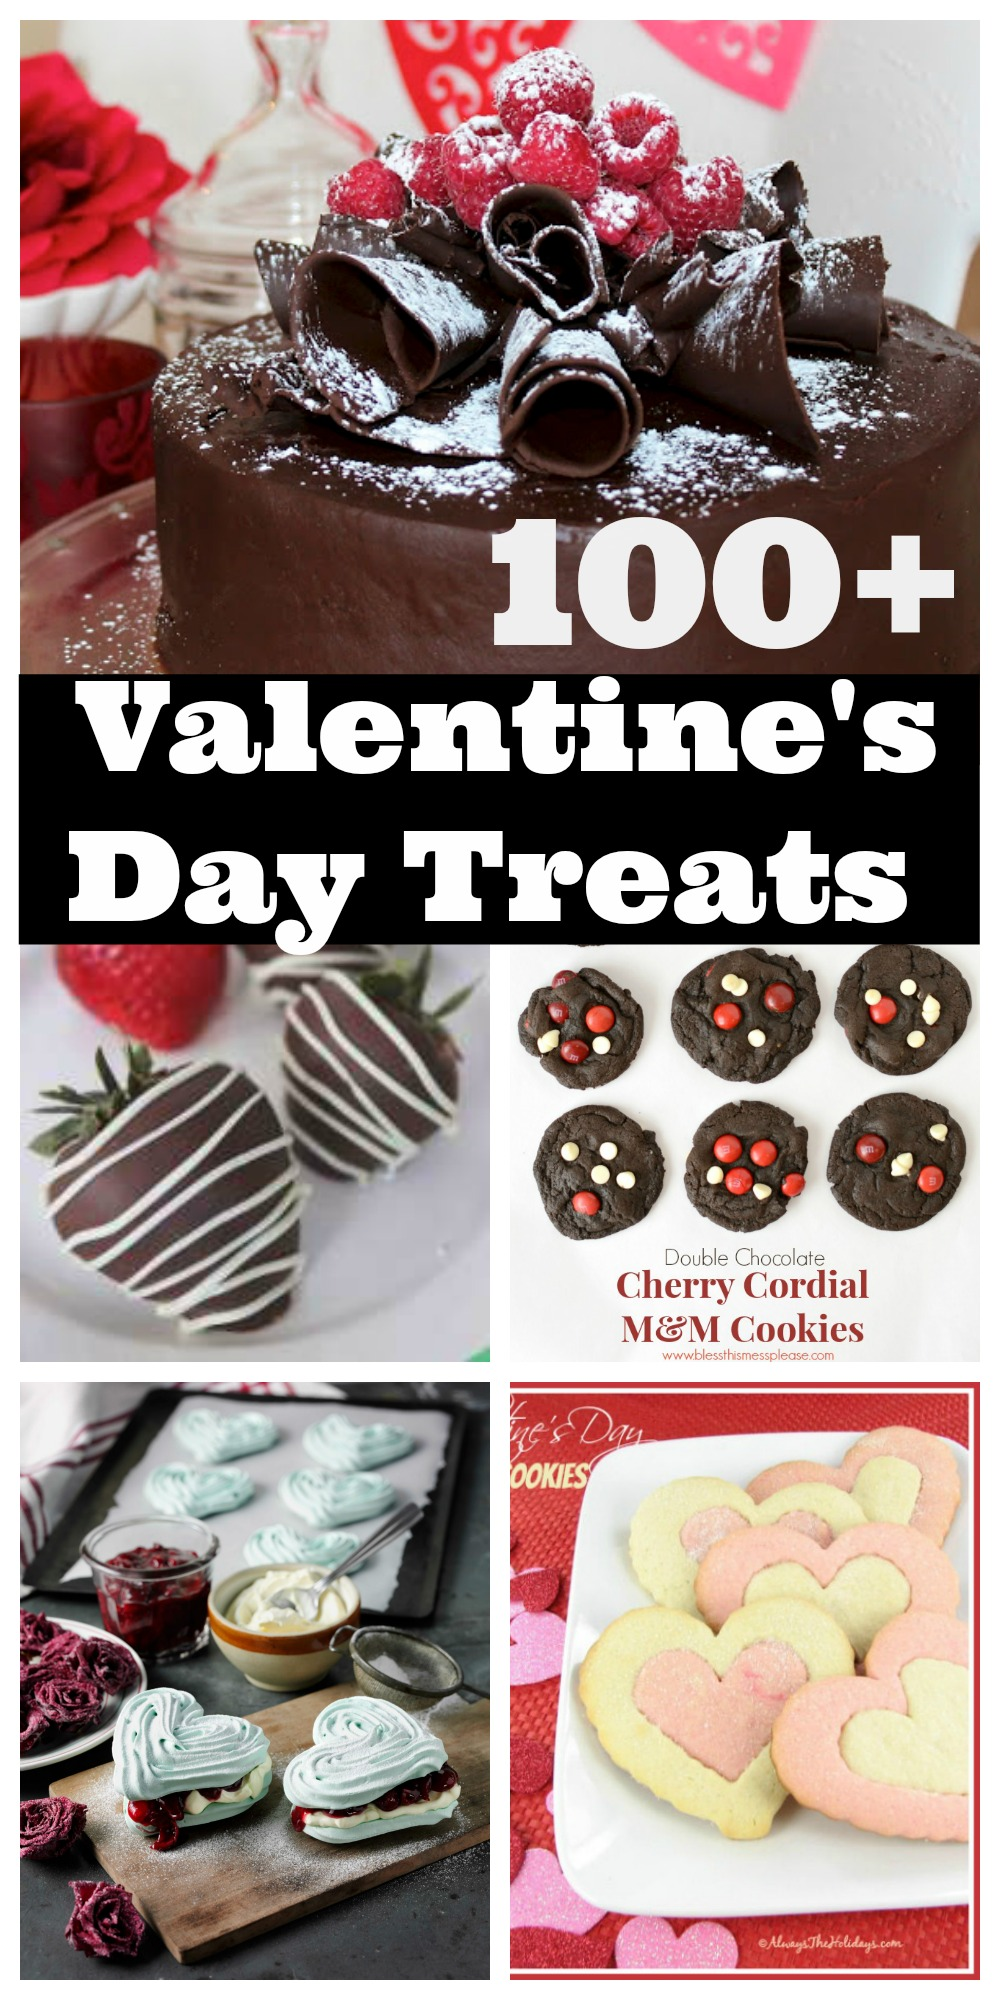 100+ Valentine's Day Treats